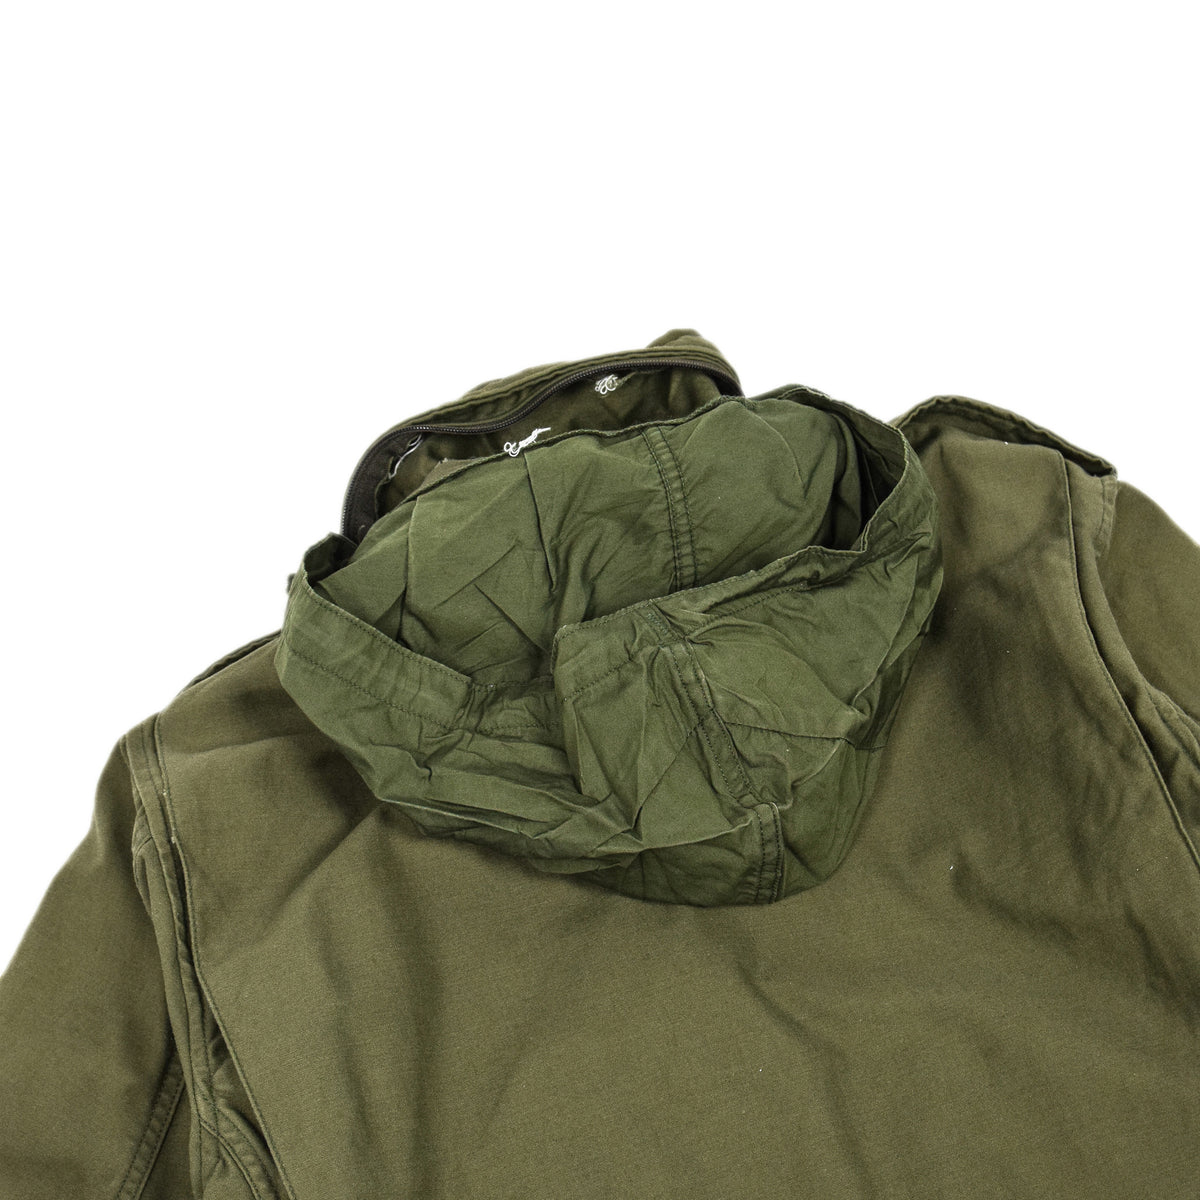 Vintage 80s M-65 Man's Field Cotton Sateen 0G-107 Green US Army Coat M hood